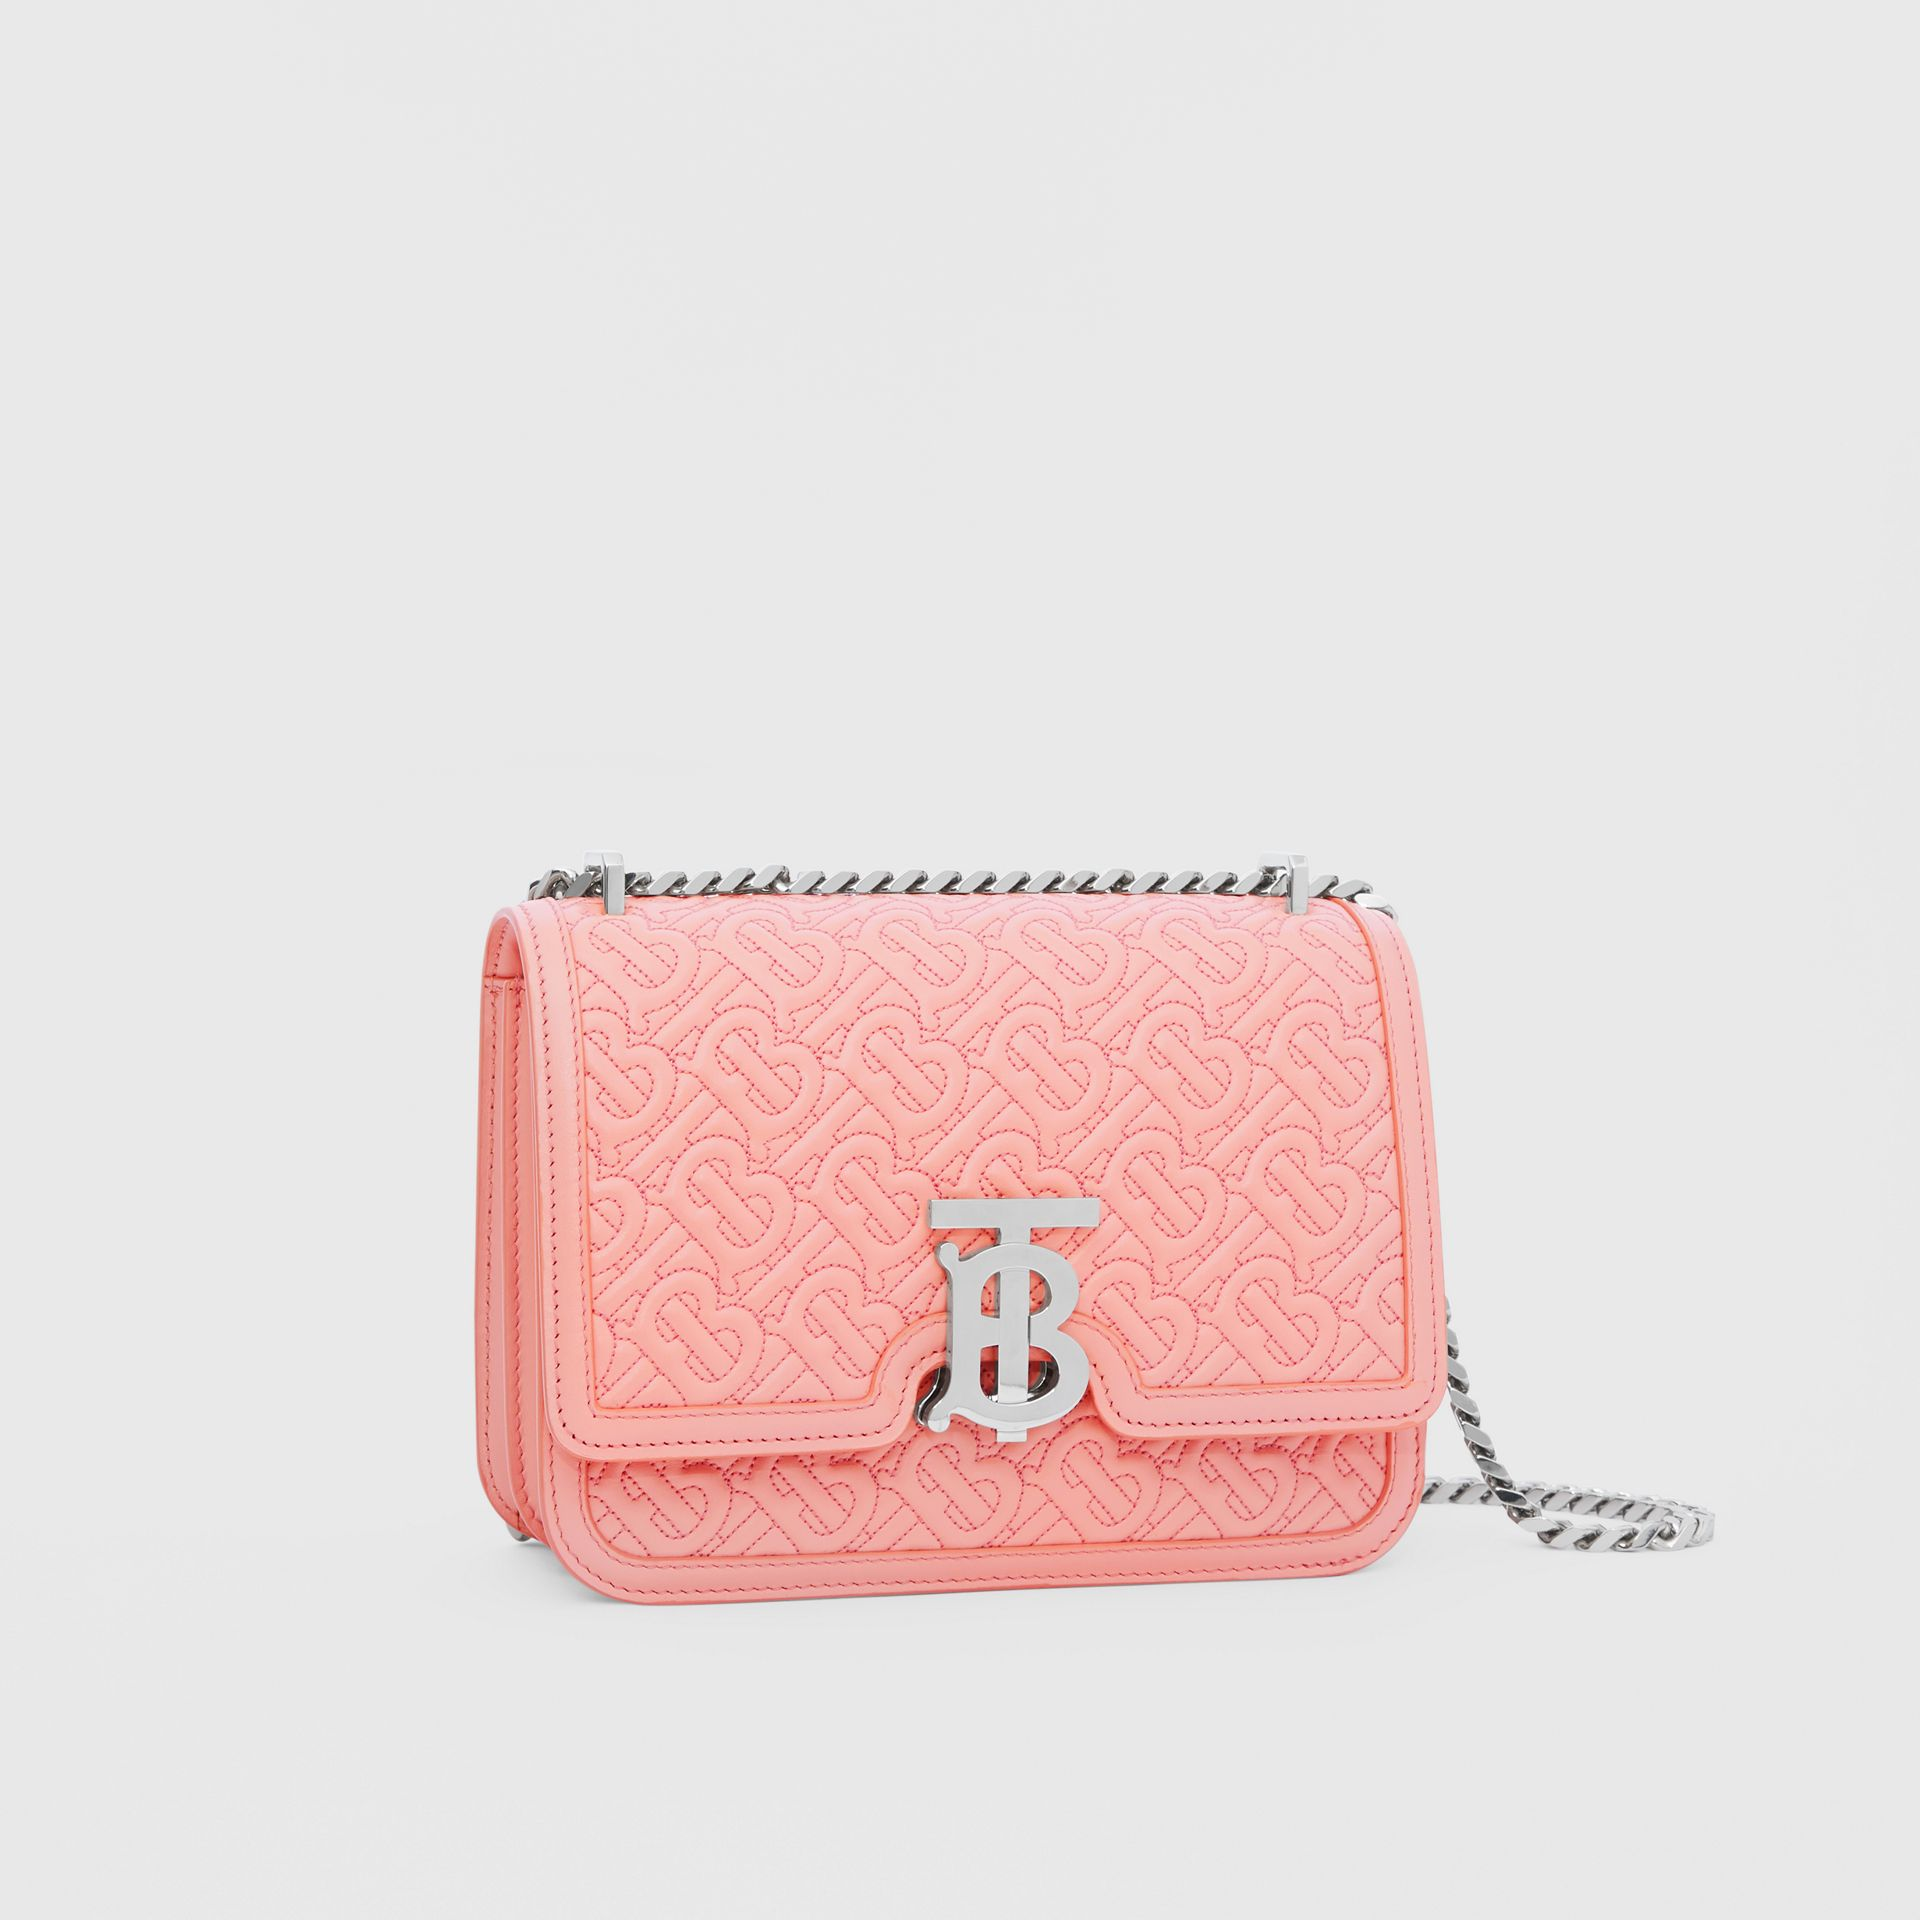 Small Quilted Monogram Lambskin TB Bag in Blush Pink - Women | Burberry Hong Kong S.A.R. - gallery image 6